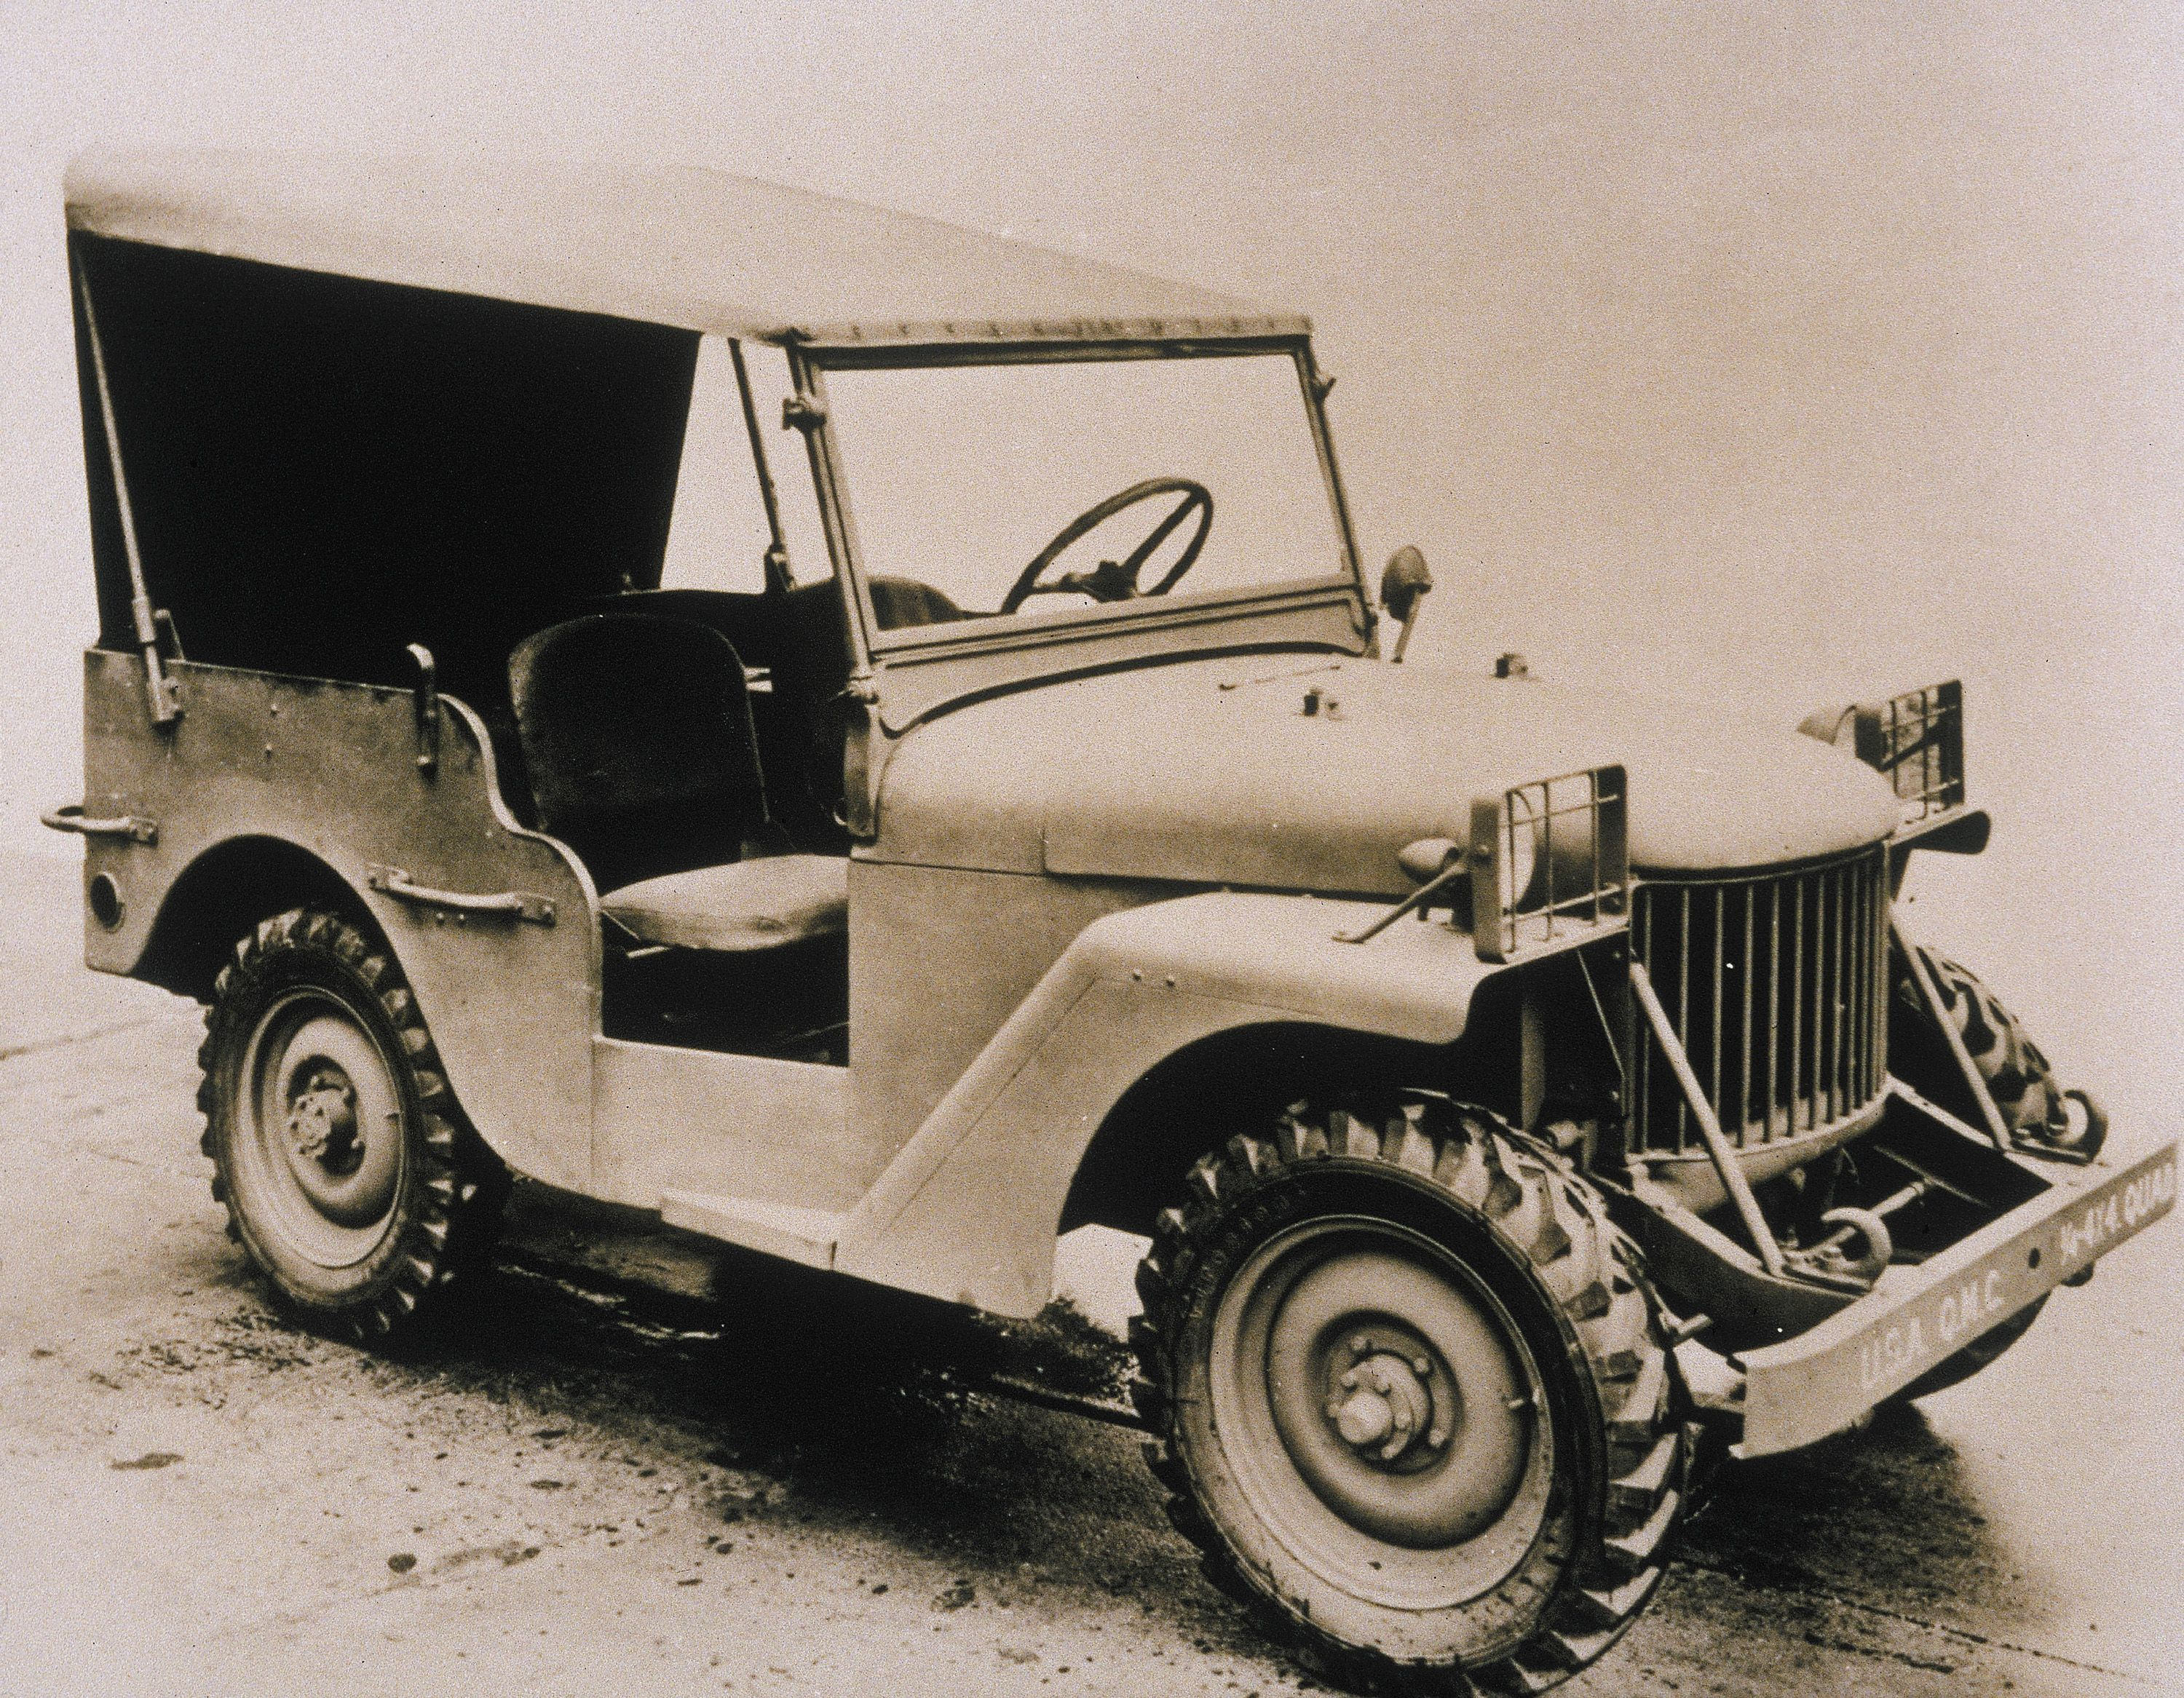 The Original Willys Quad Concept Crafted From Existing Parts In